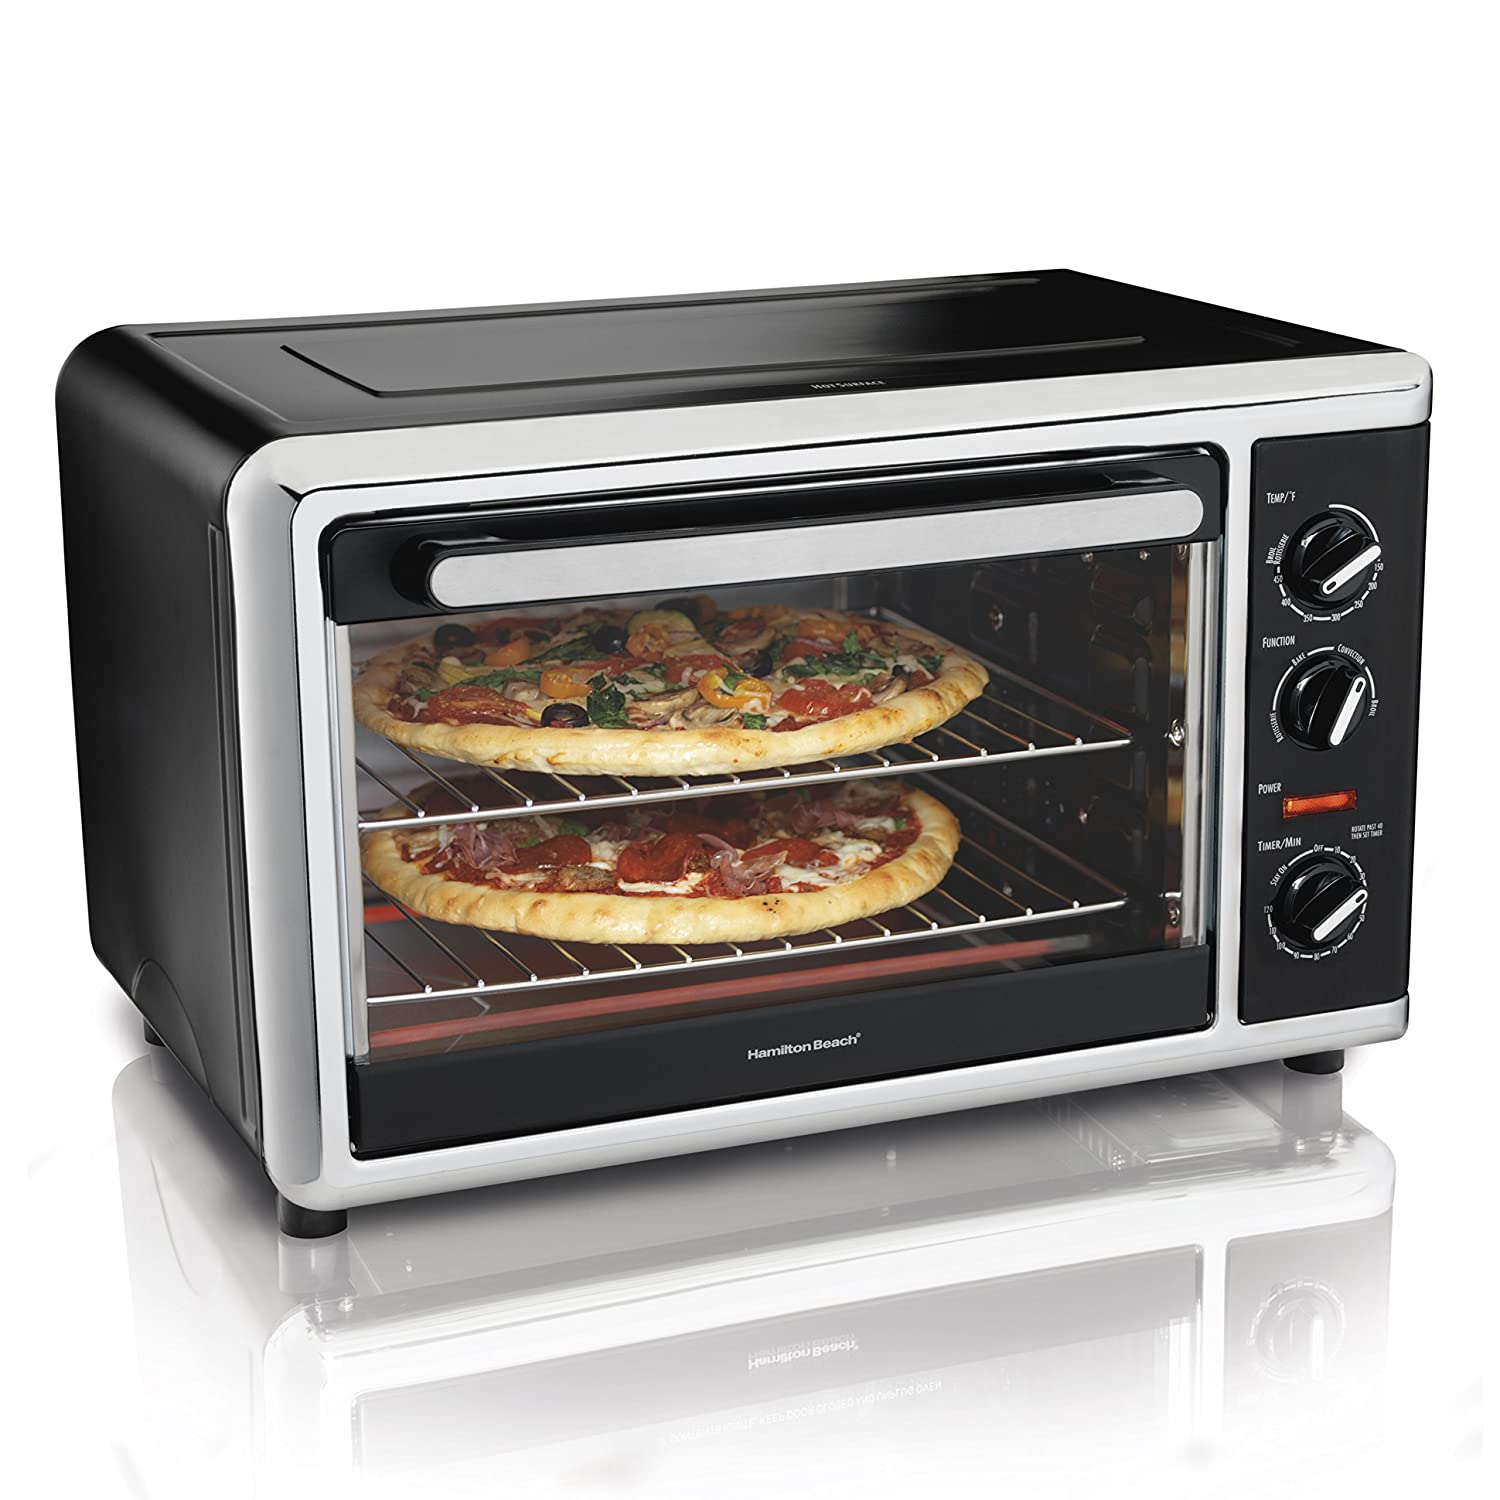 ovens snack pan oven bake commercial stainless countertops pin top counter new countertop kitchen pizza steel dining